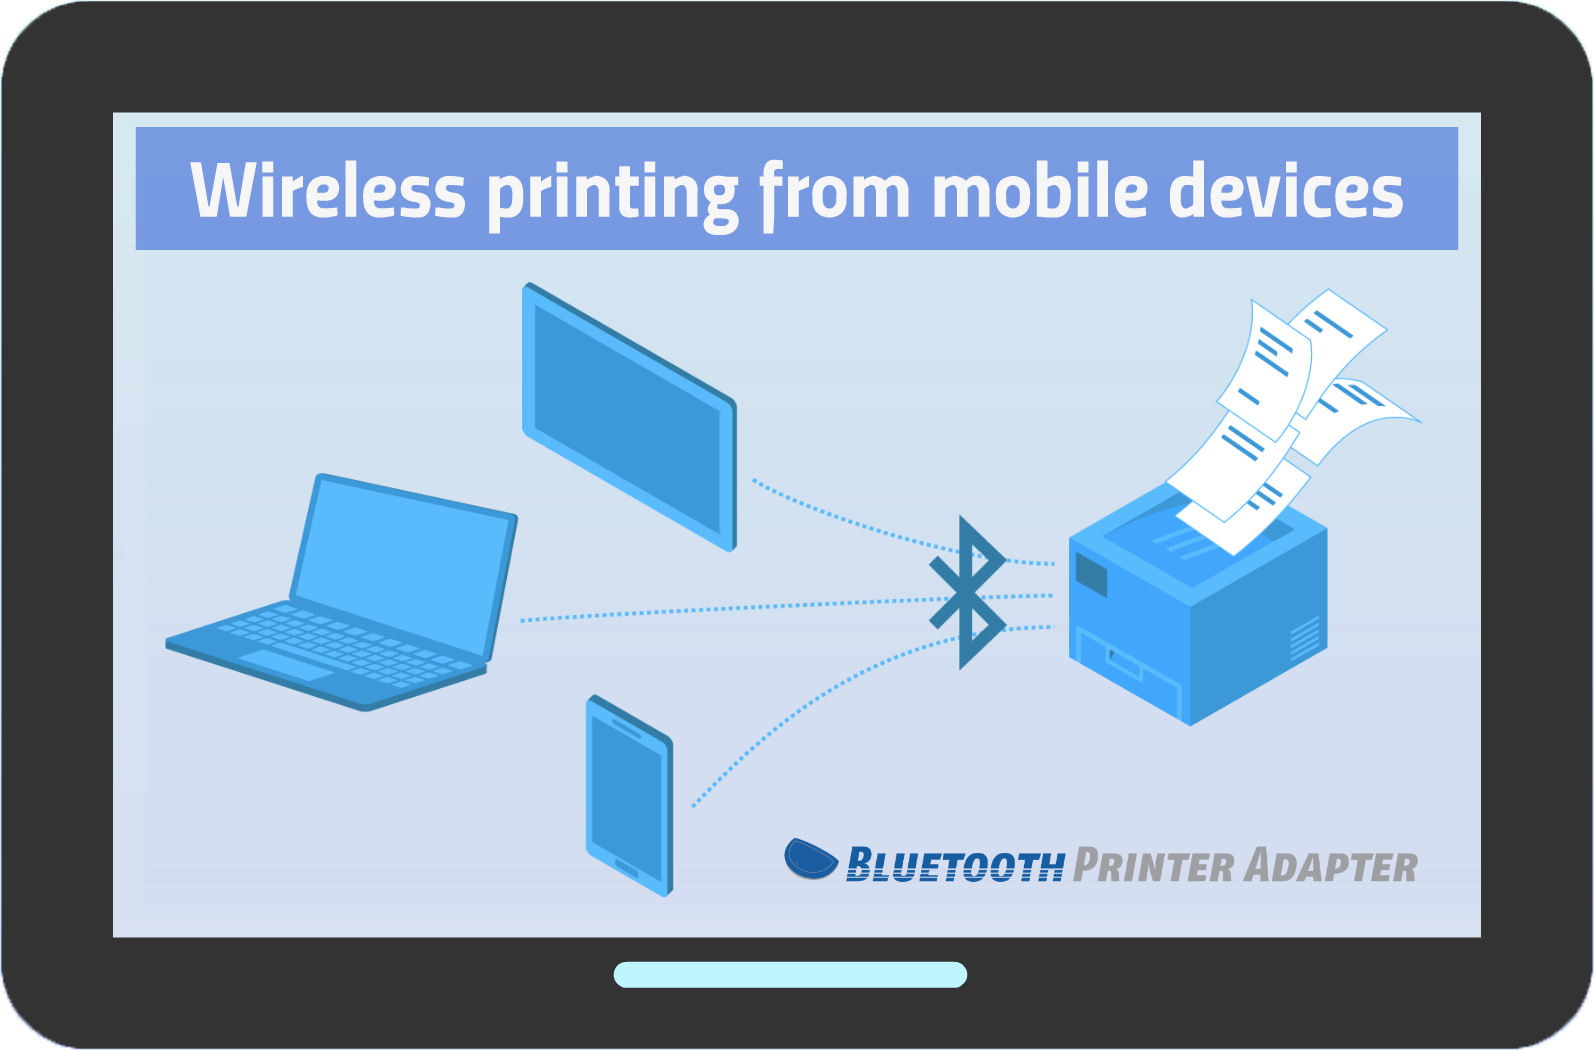 Wireless printing via Bluetooth in the office and on the go